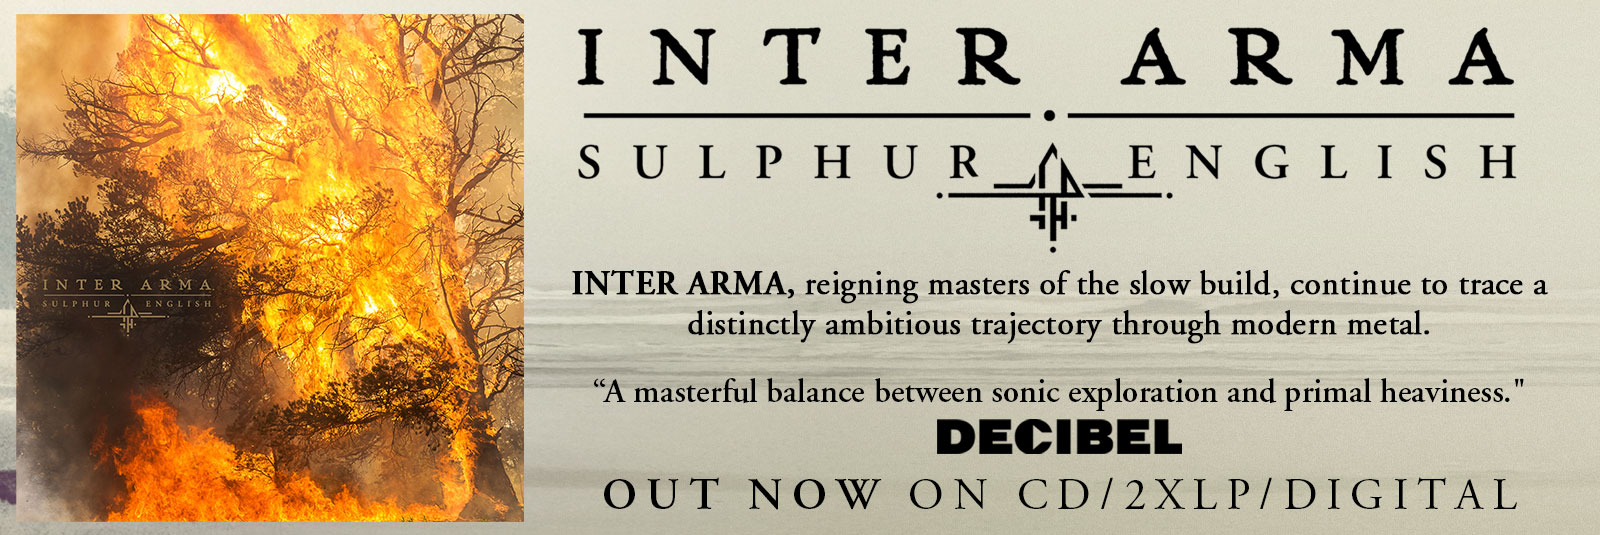 Inter-Arma-Sulphur-English-Doom-Metal-Relapse-Out-Now